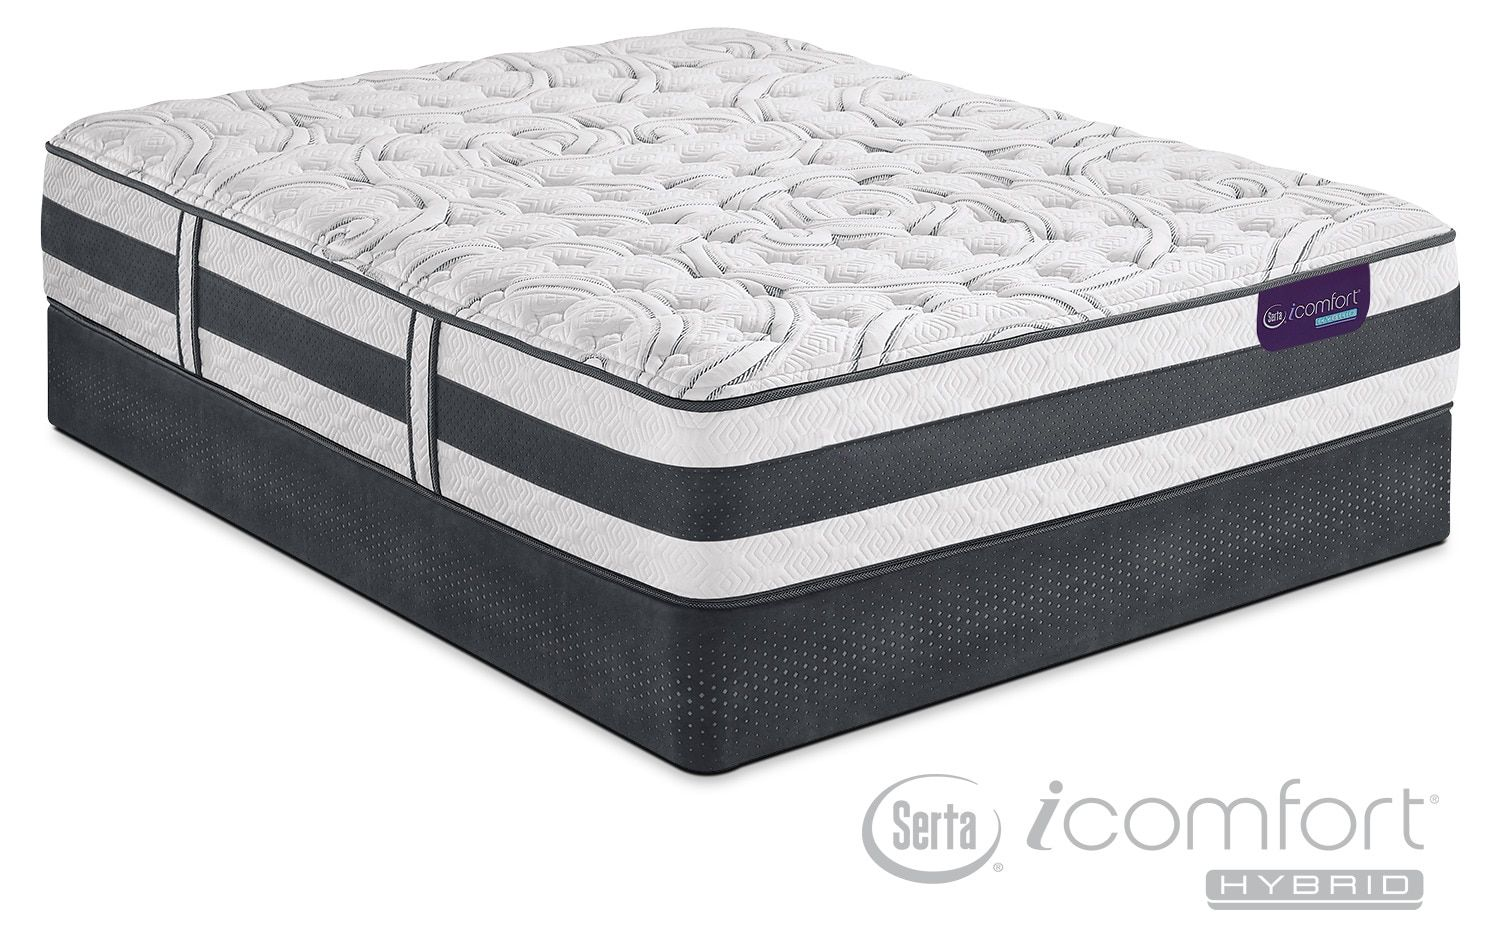 applause ii firm california king mattress and split foundation set